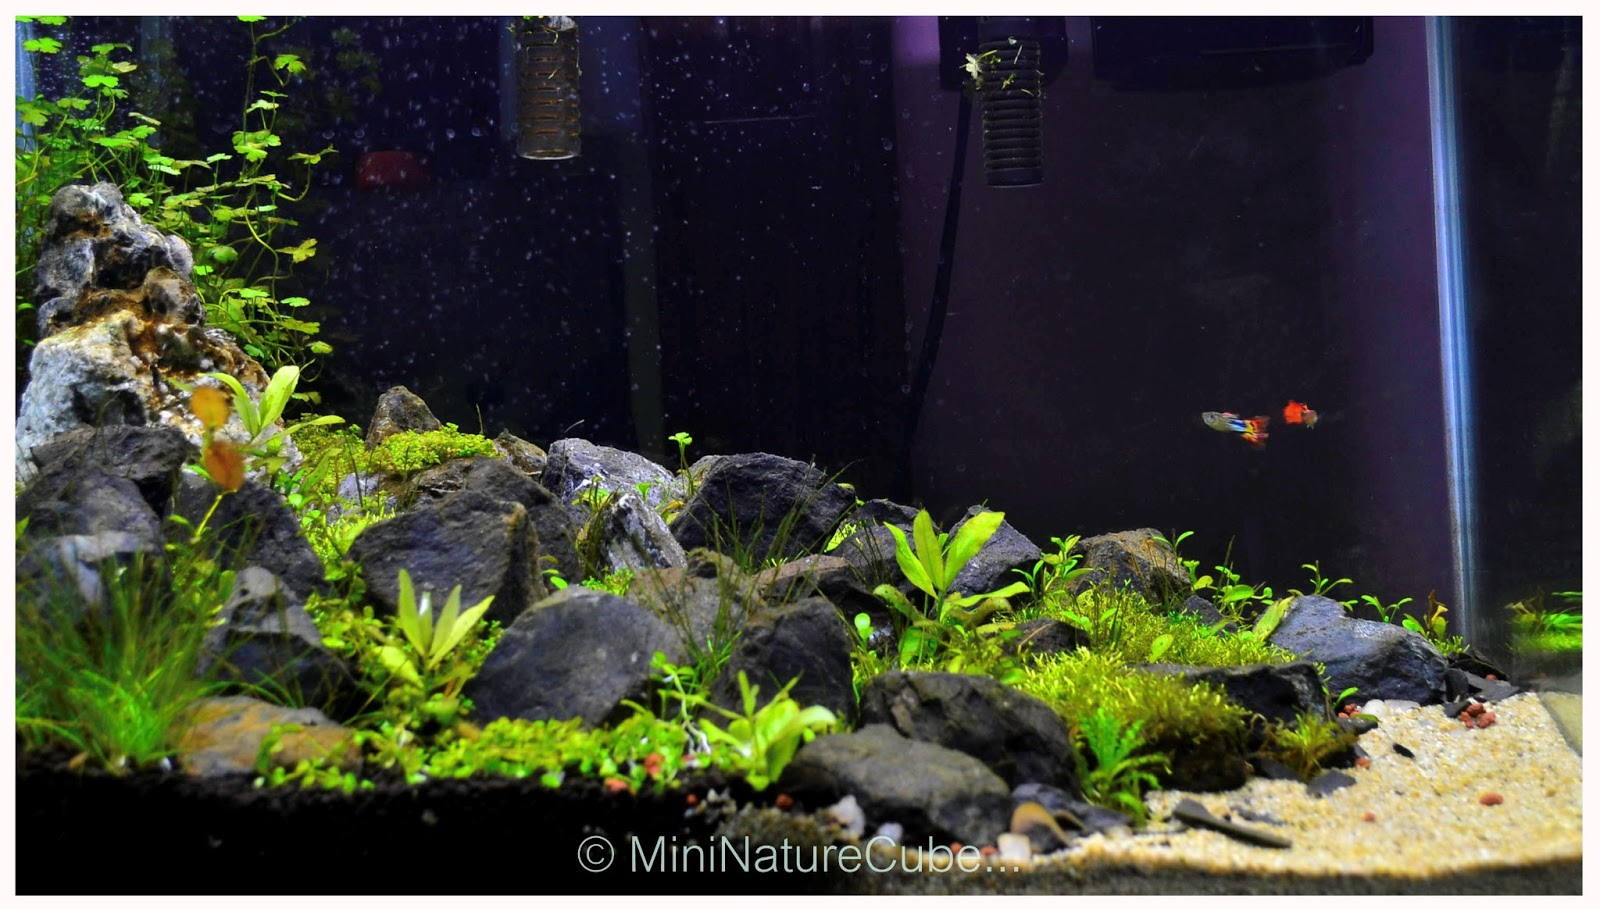 Photo Shoot Of My New Iwagumi Planted Aquarium The Art Of Planted Aquarium